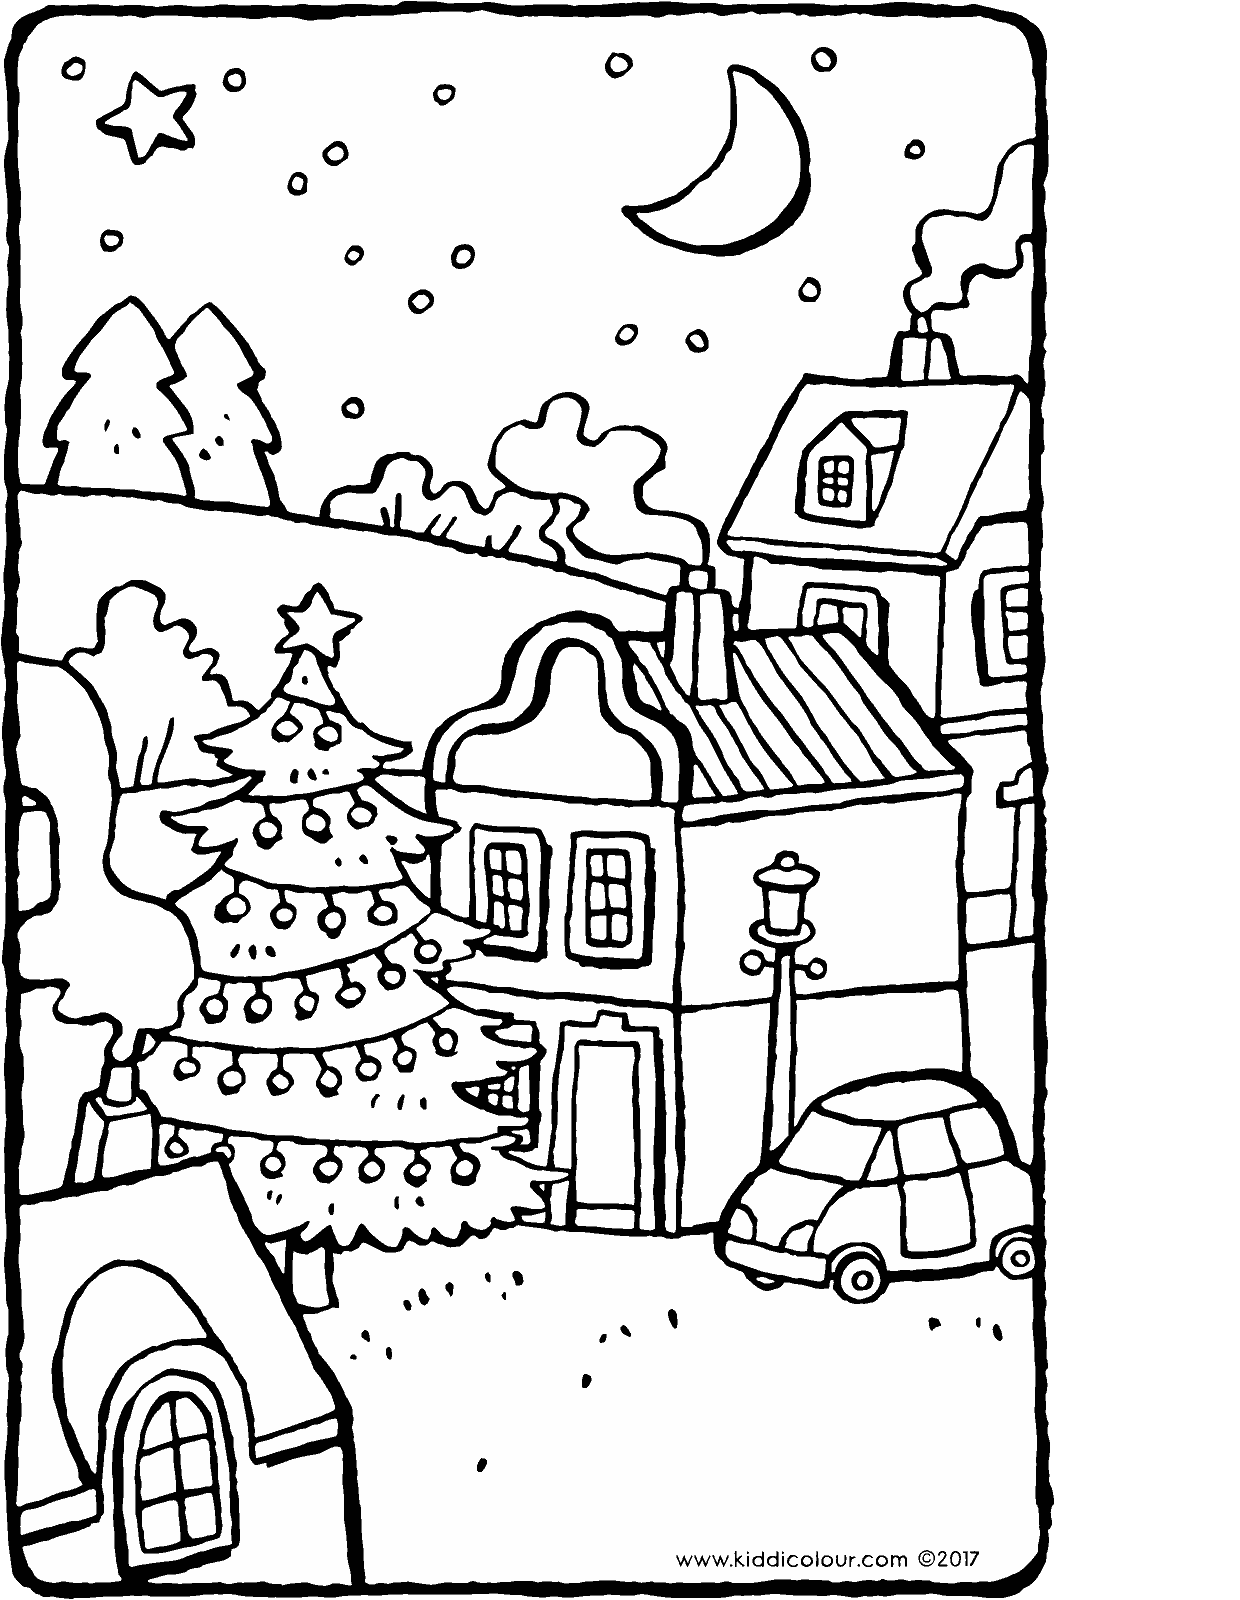 Drawing bed colouring page. Christmas tree in the